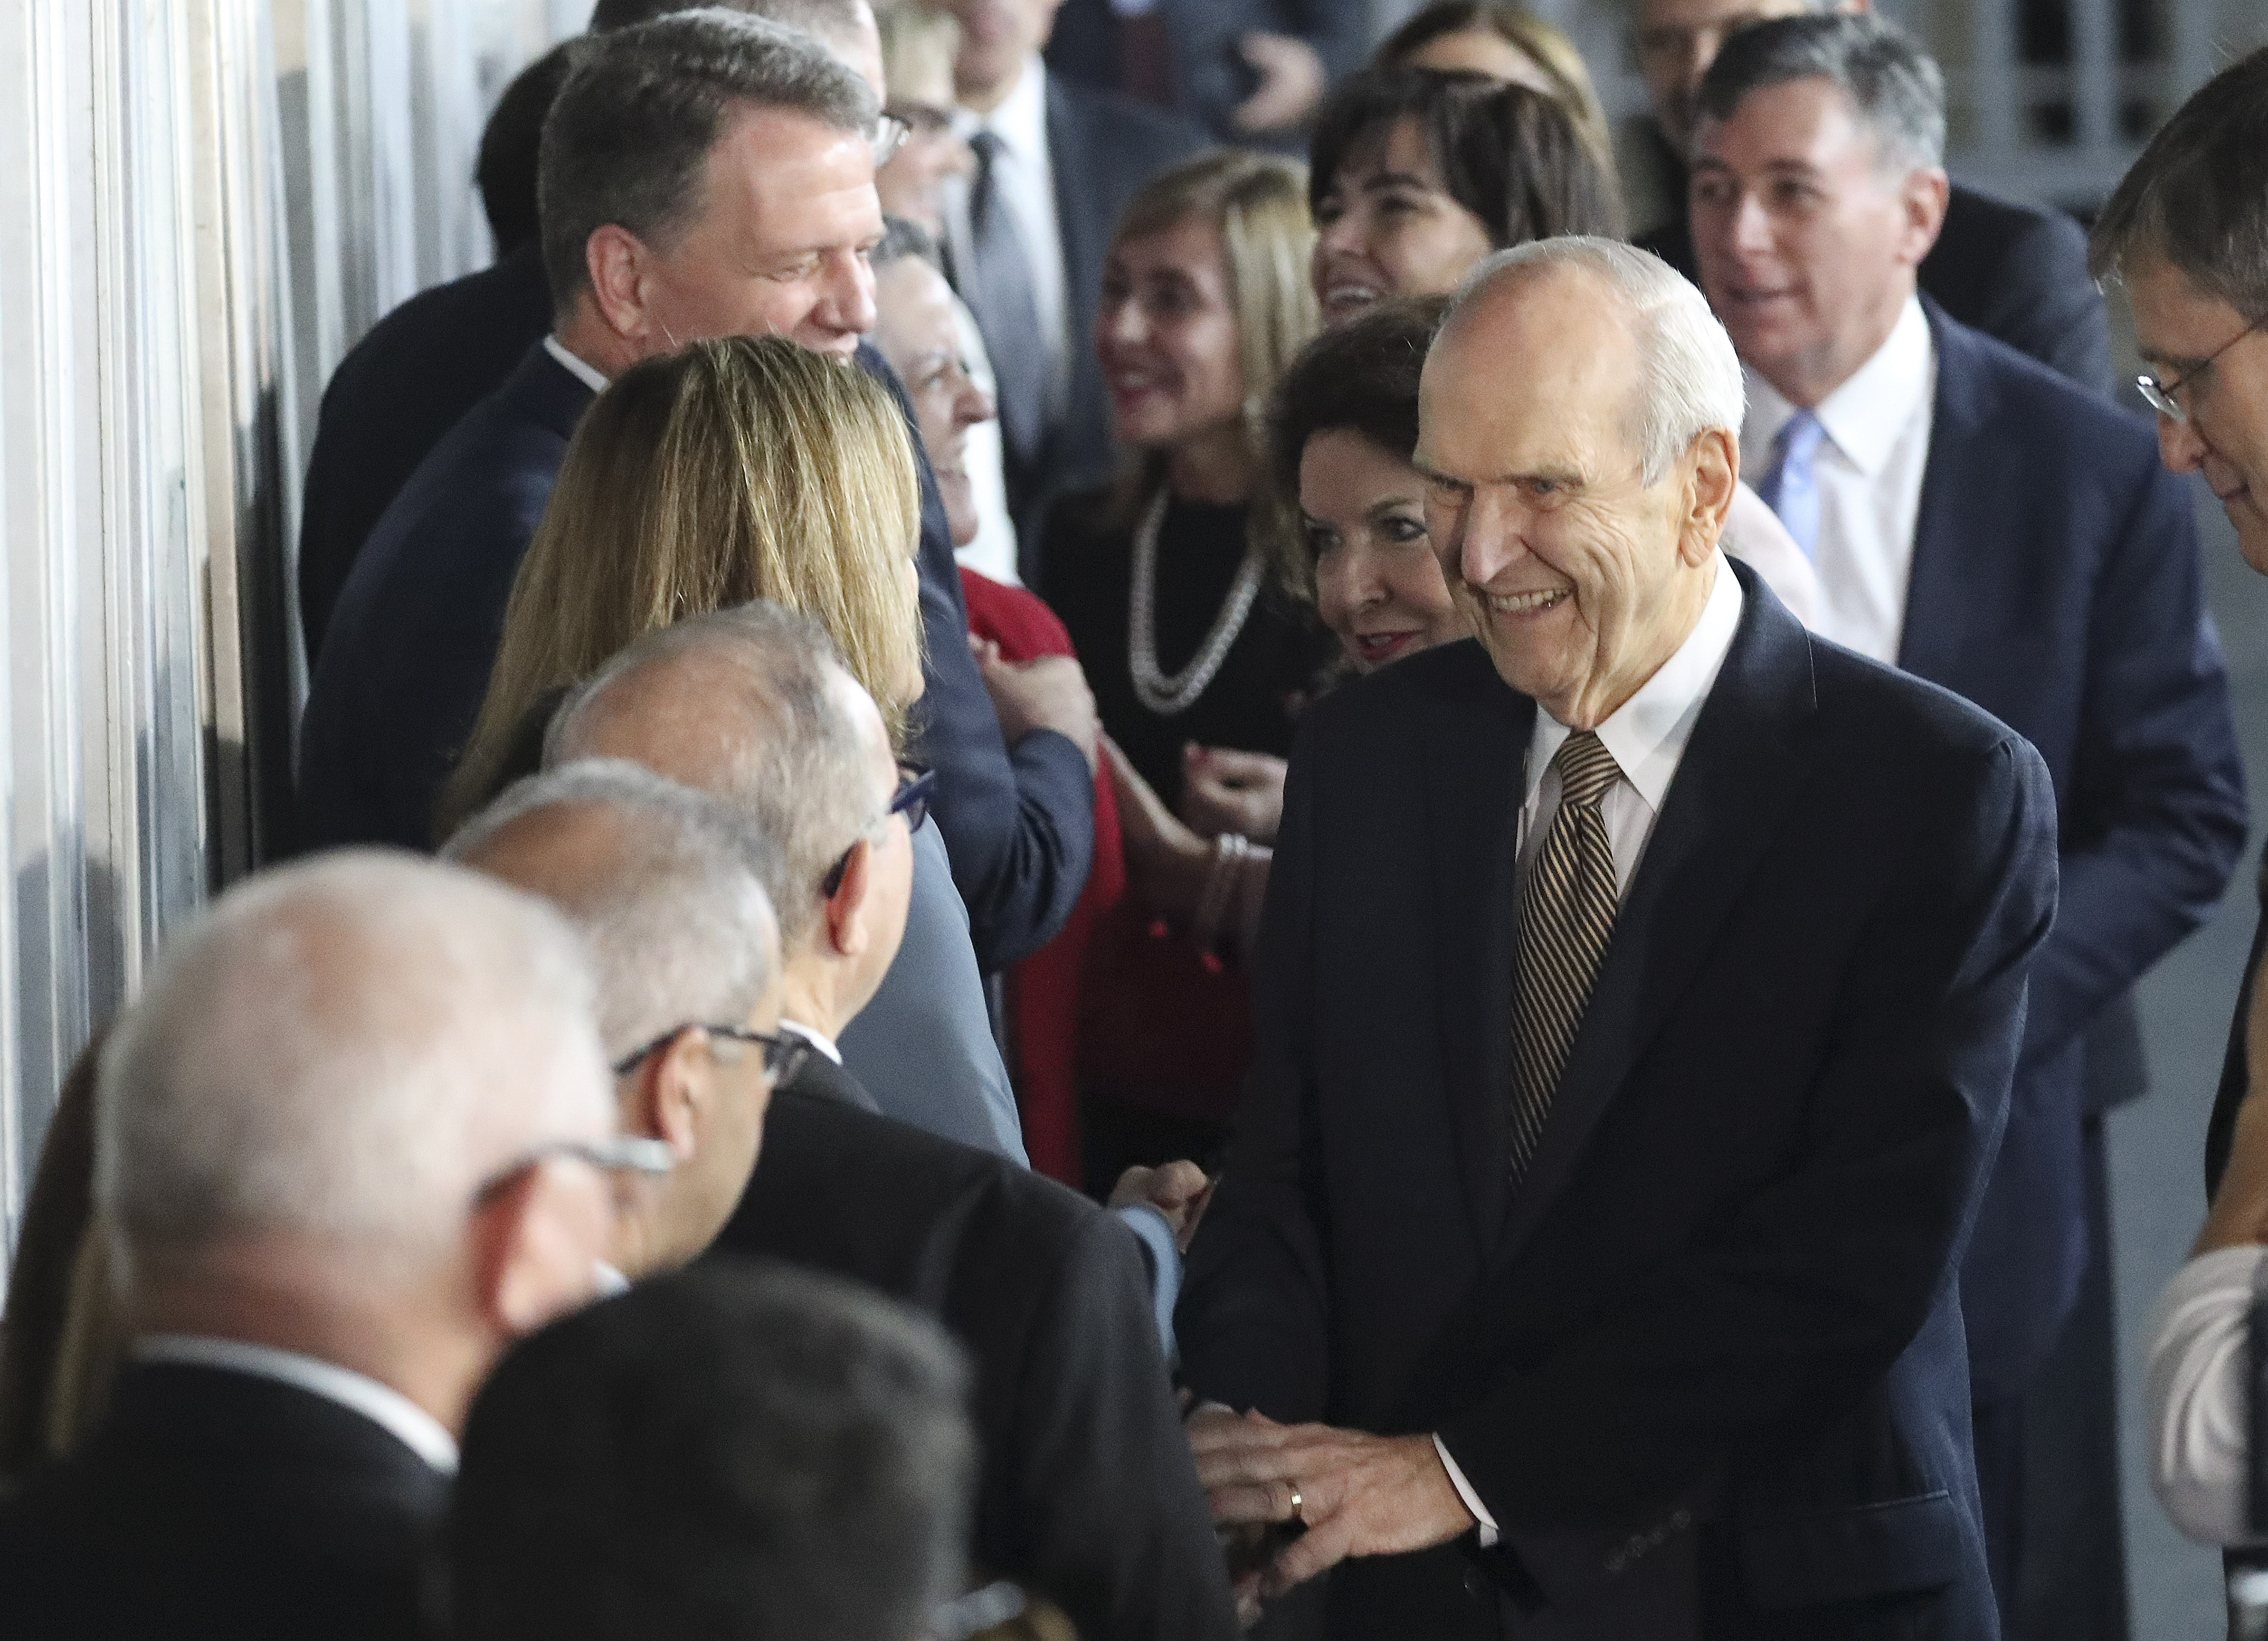 President Russell M. Nelson of The Church of Jesus Christ of Latter-day Saints and his wife, Sister Wendy Nelson, greet attendees prior to a devotional in Sao Paulo, Brazil, on Sunday, Sept. 1, 2019.